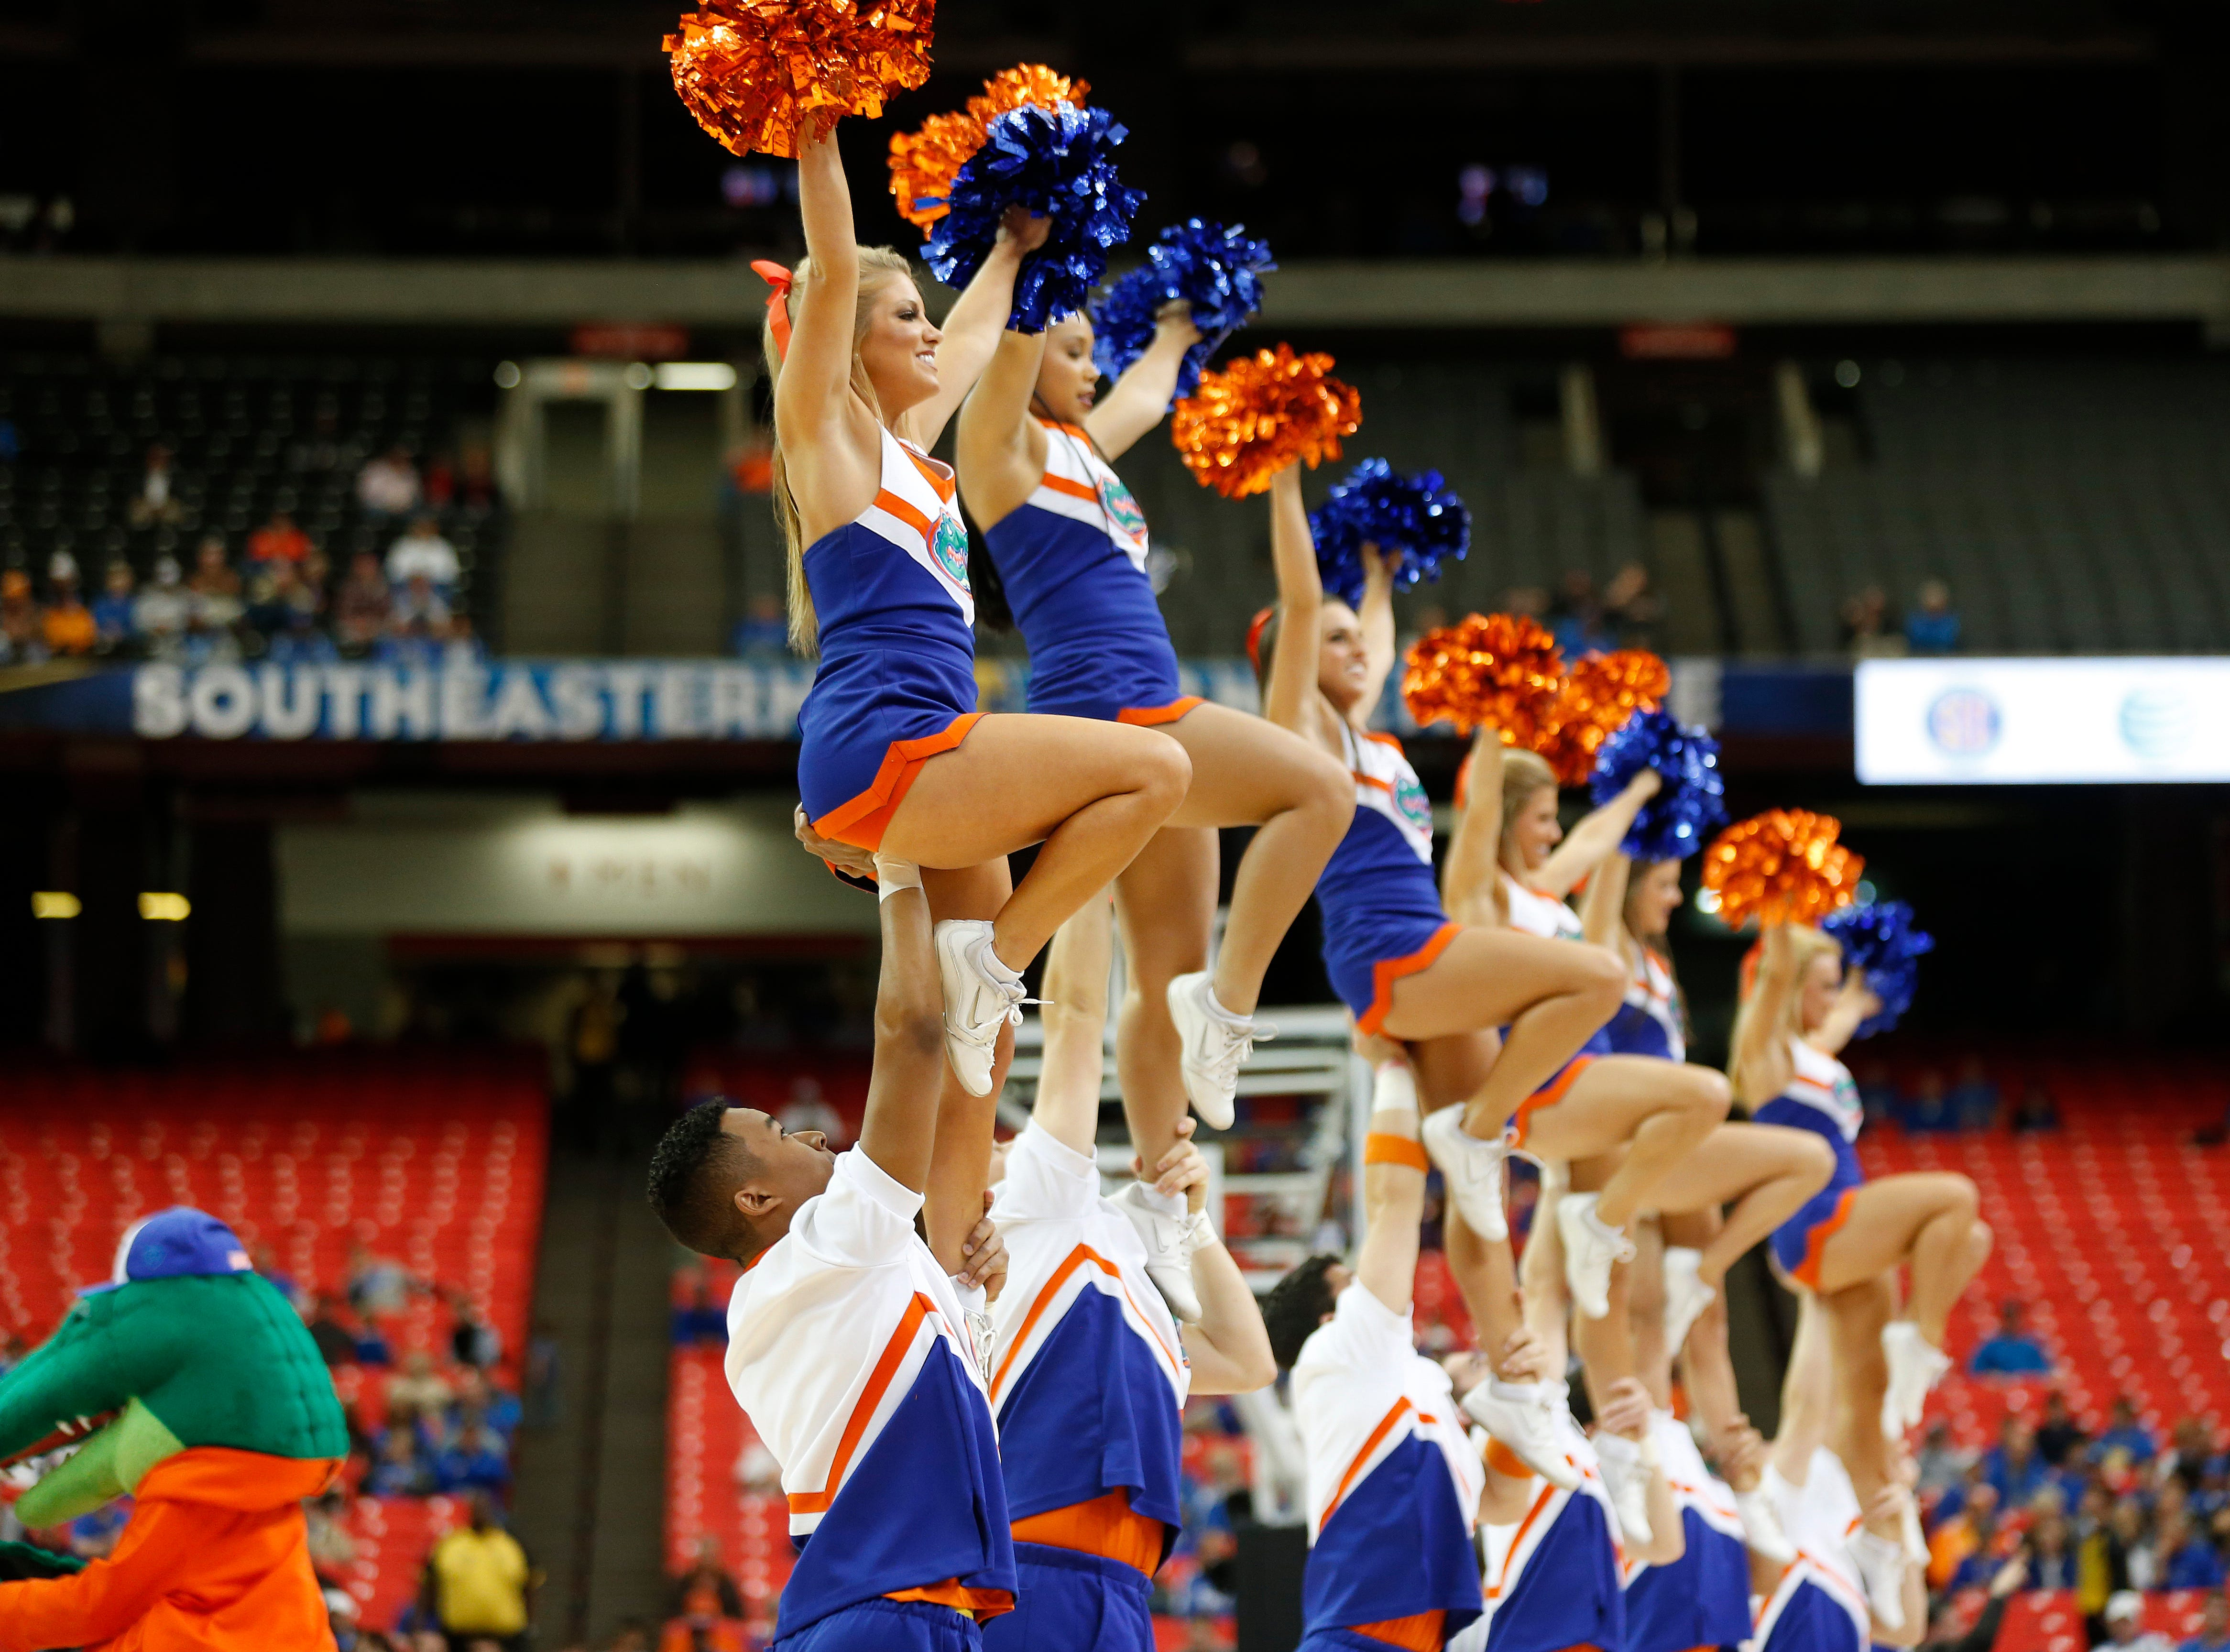 Florida cheerleaders perform during the first half of an NCAA college basketball game against the Missouri in the quarterfinal round of the Southeastern Conference men's tournament, Friday, March 14, 2014, in Atlanta. (AP Photo/John Bazemore)